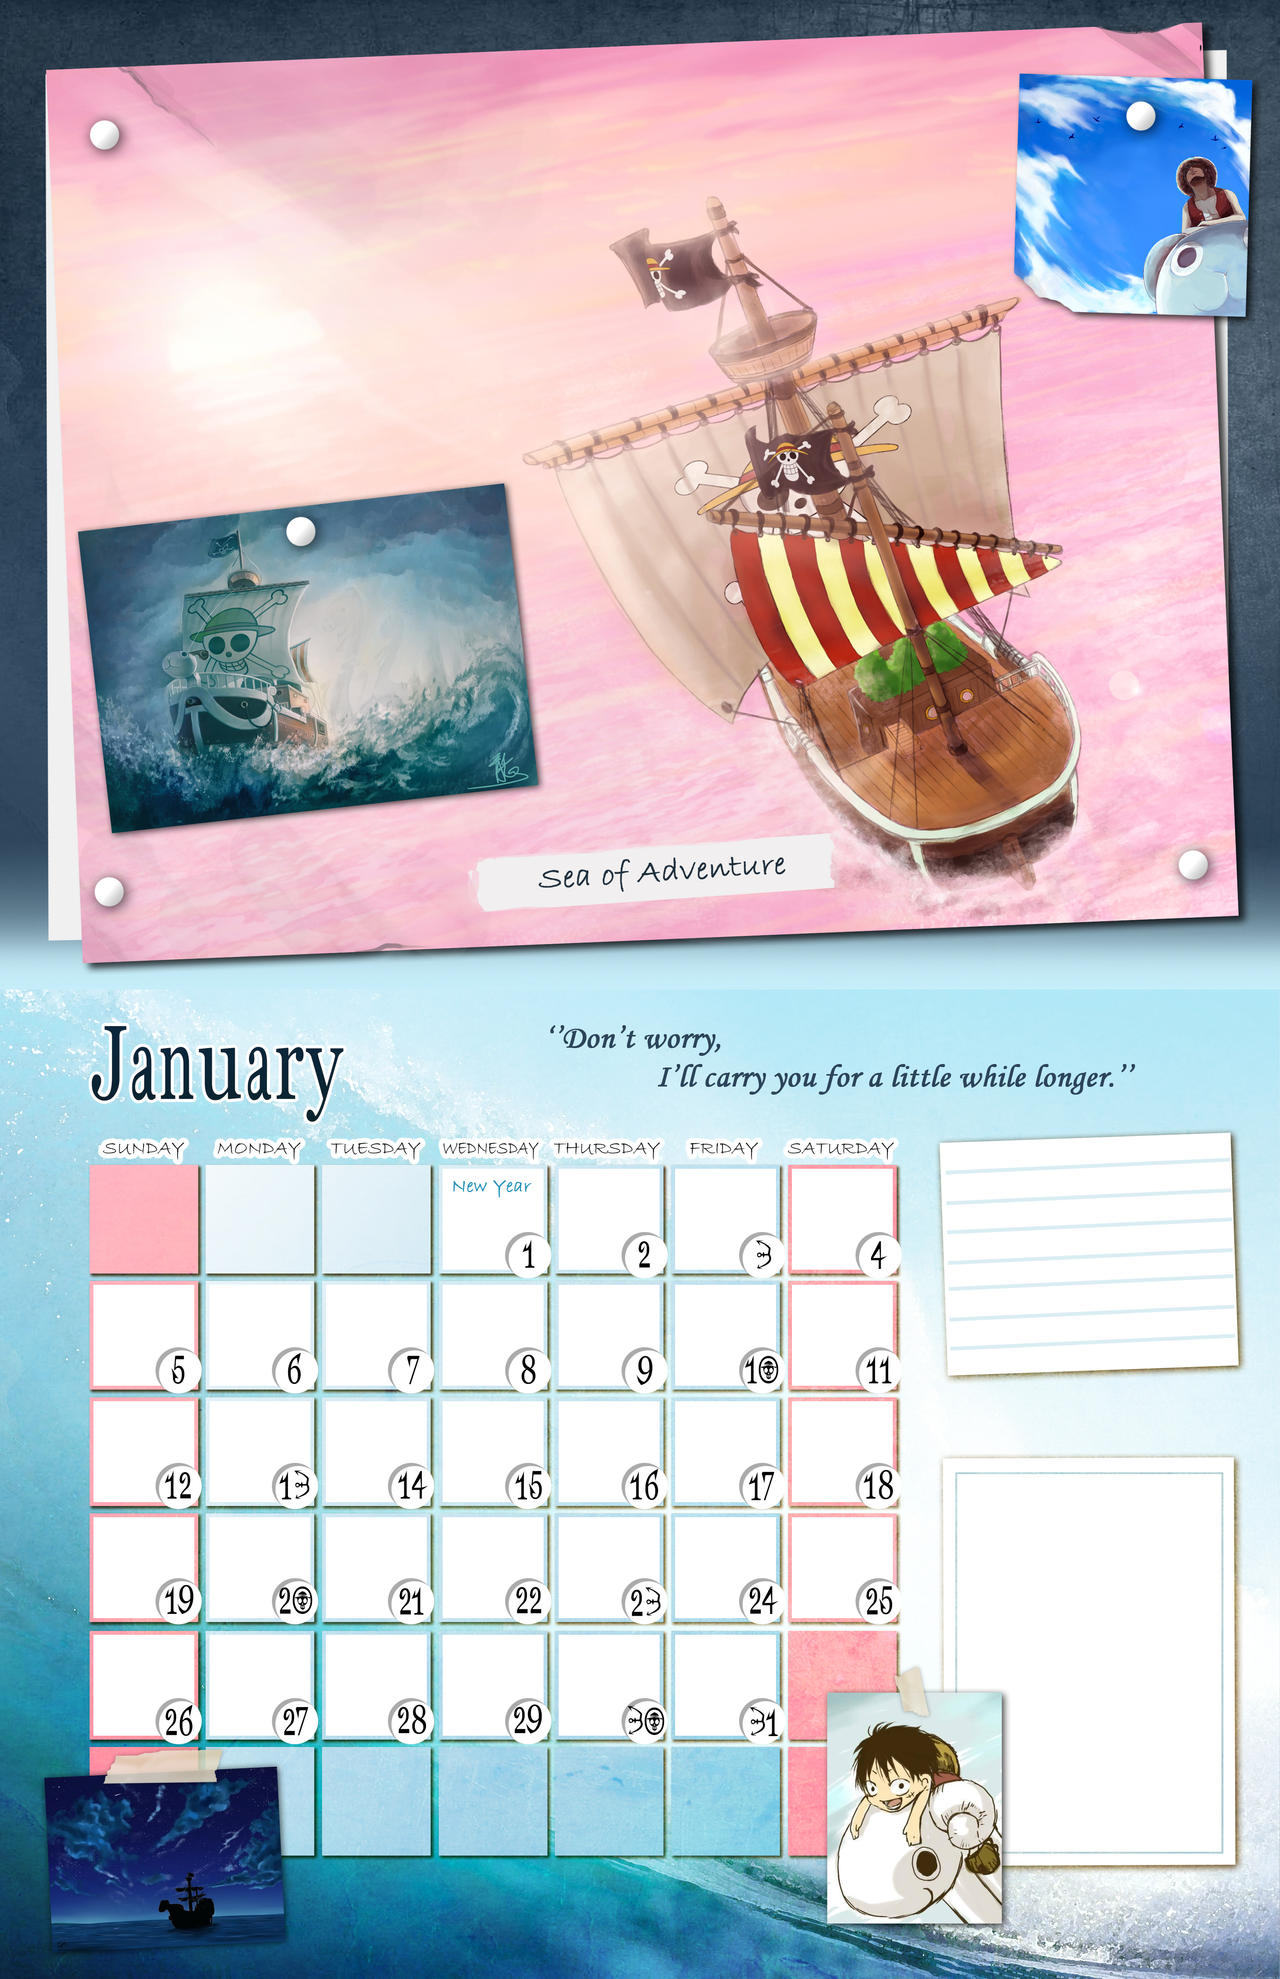 Calendar Art Piece : One piece calendar january by takiyah chan on